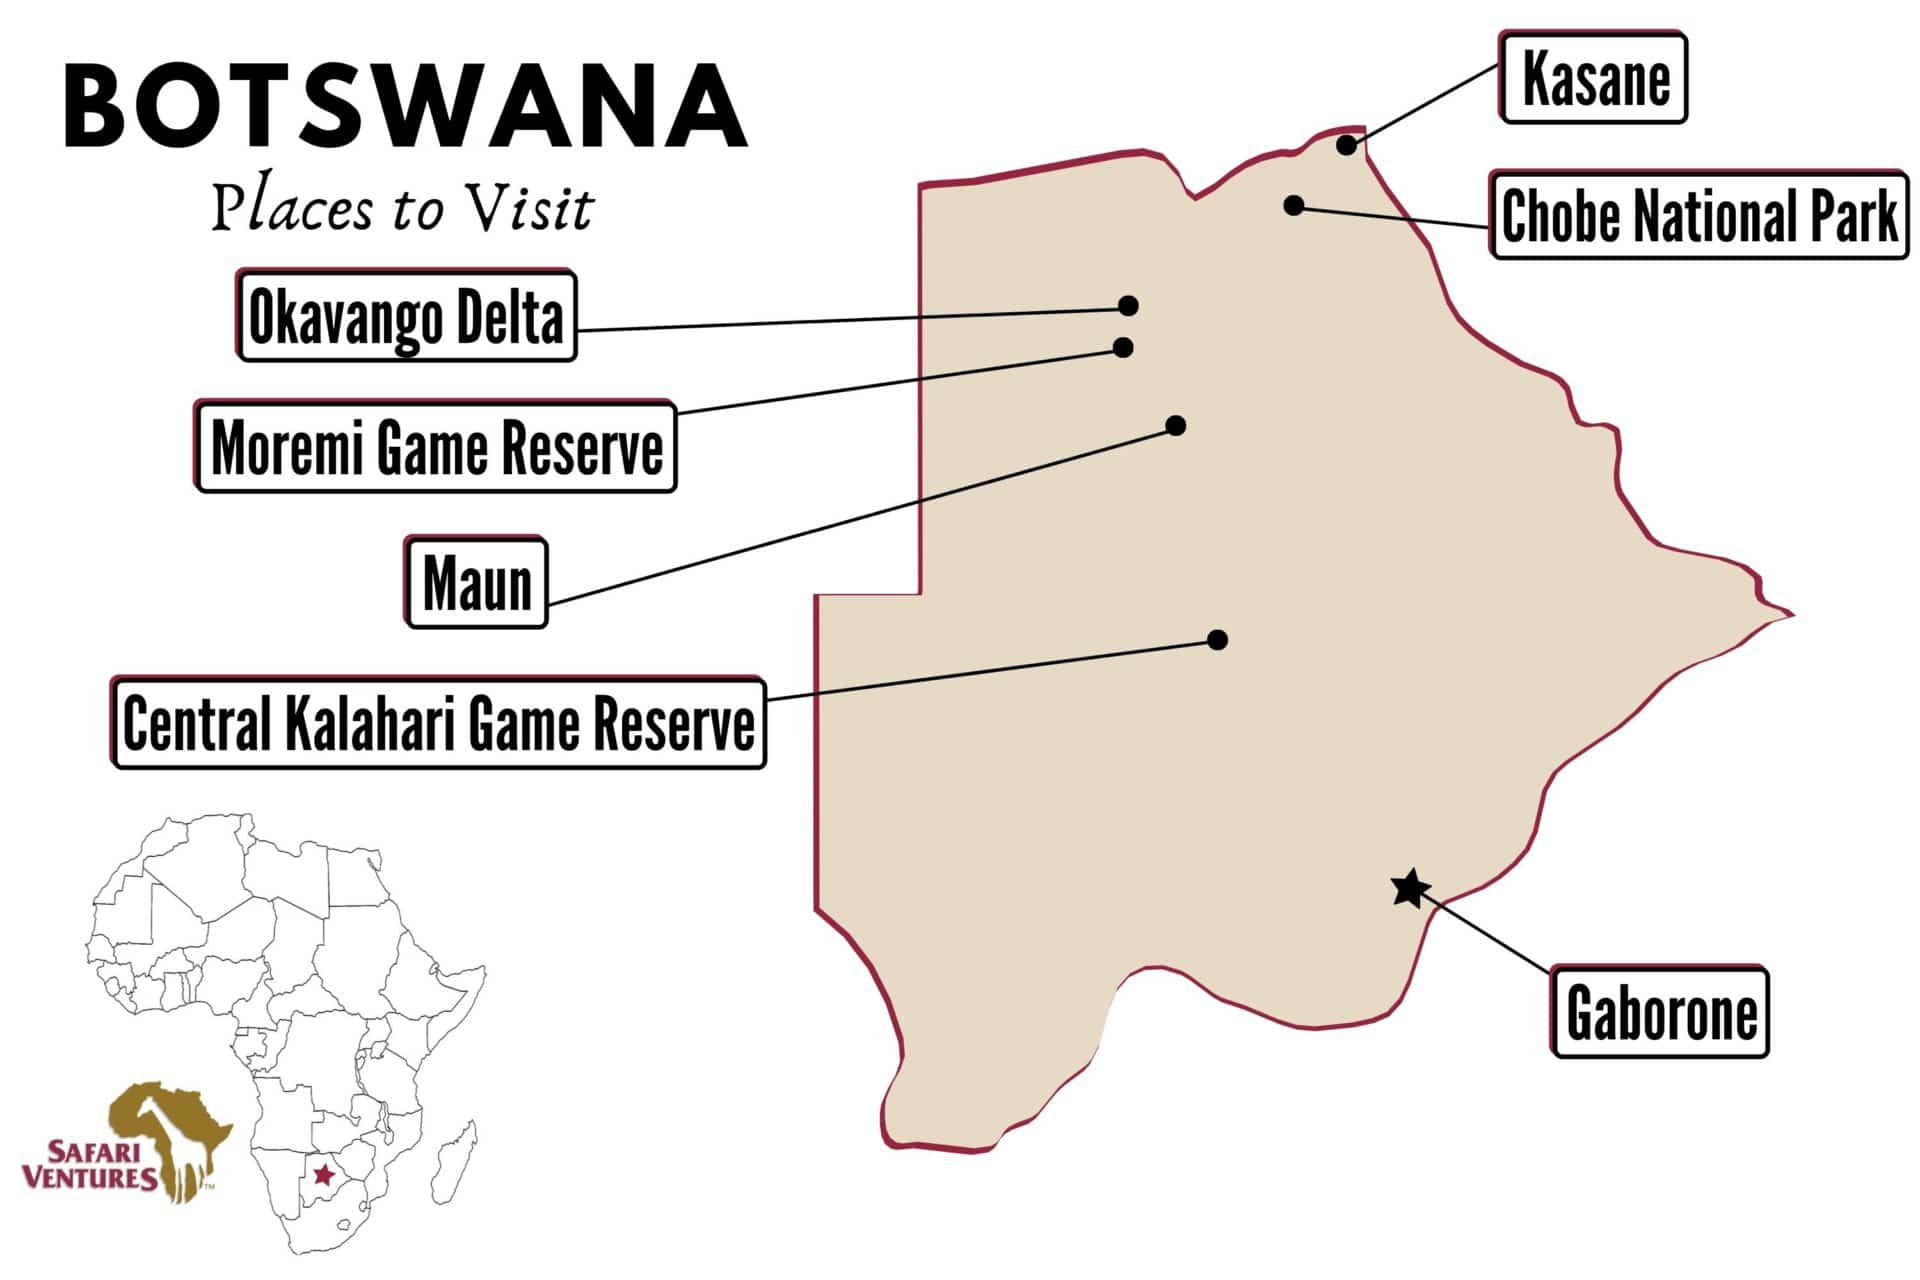 Places to visit in Botswana